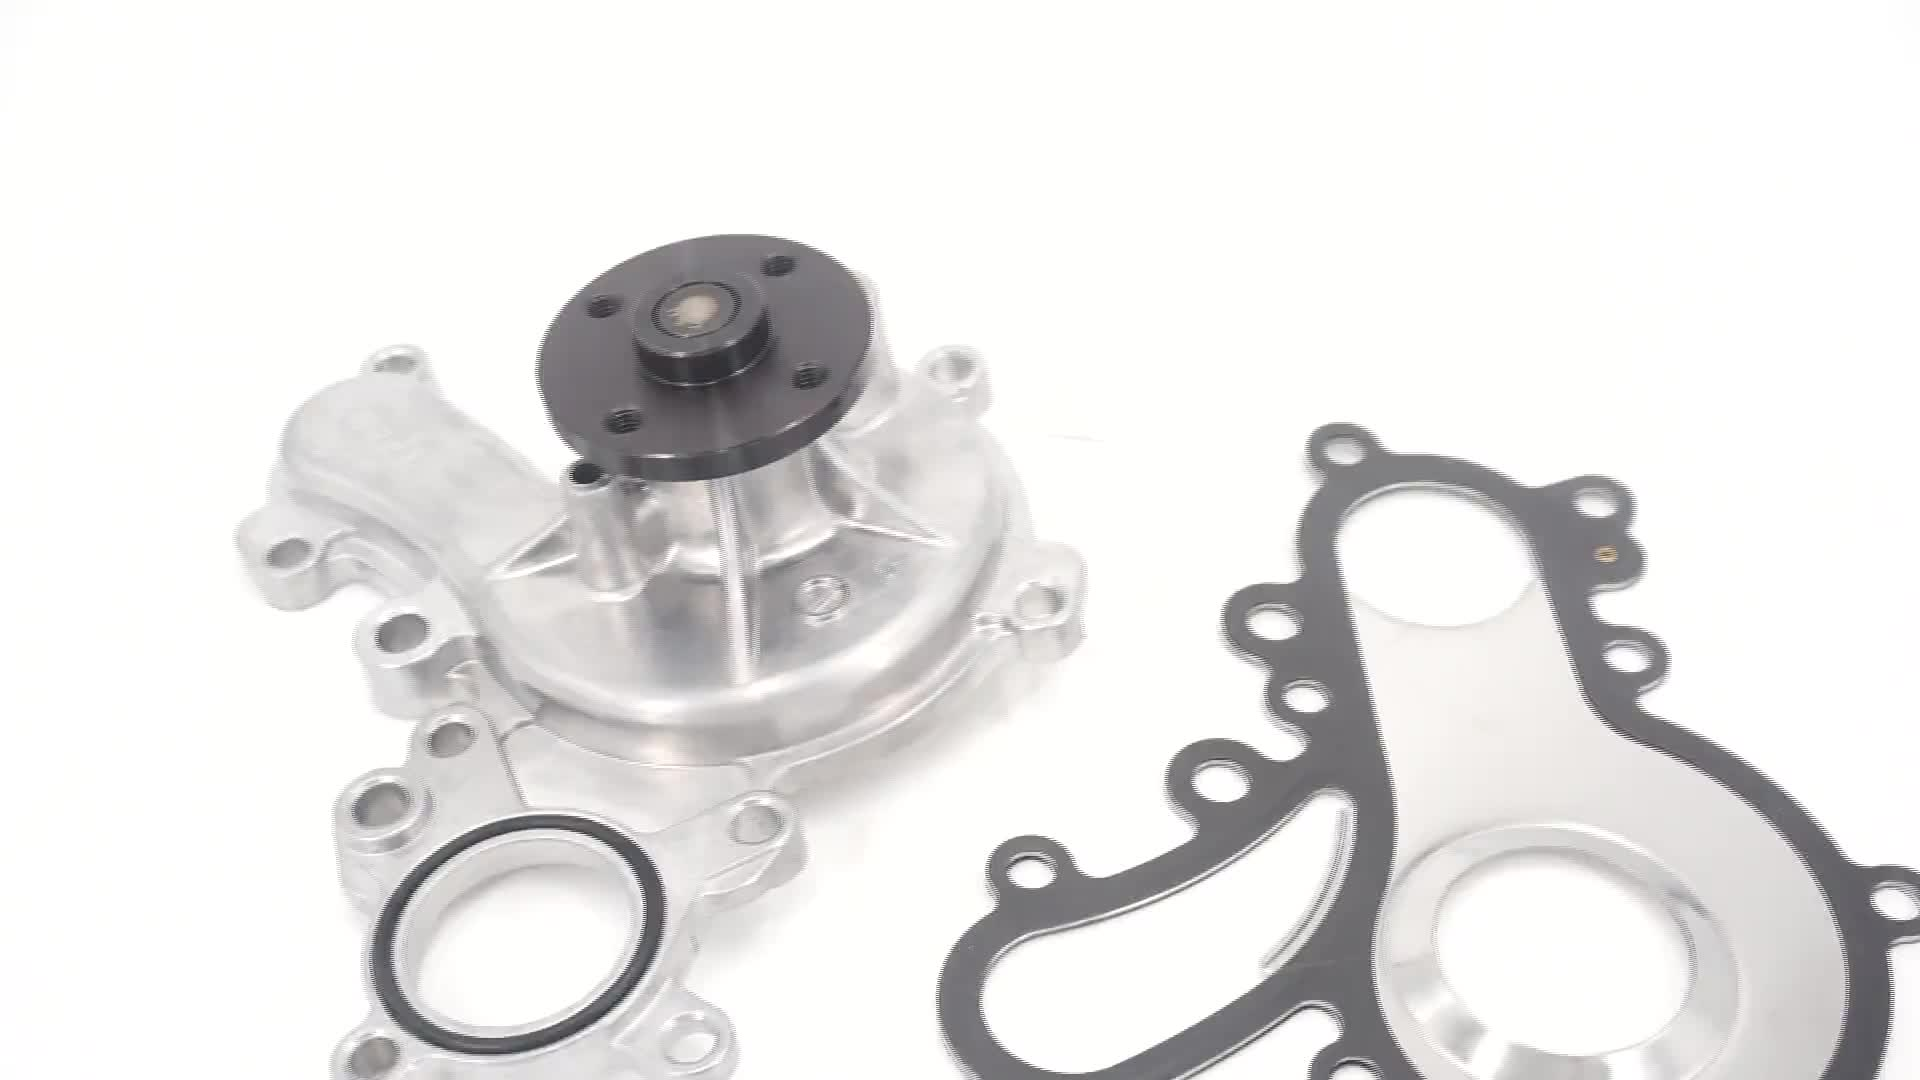 TP Water Pump For HIACE HILUX OEM 16100-79445